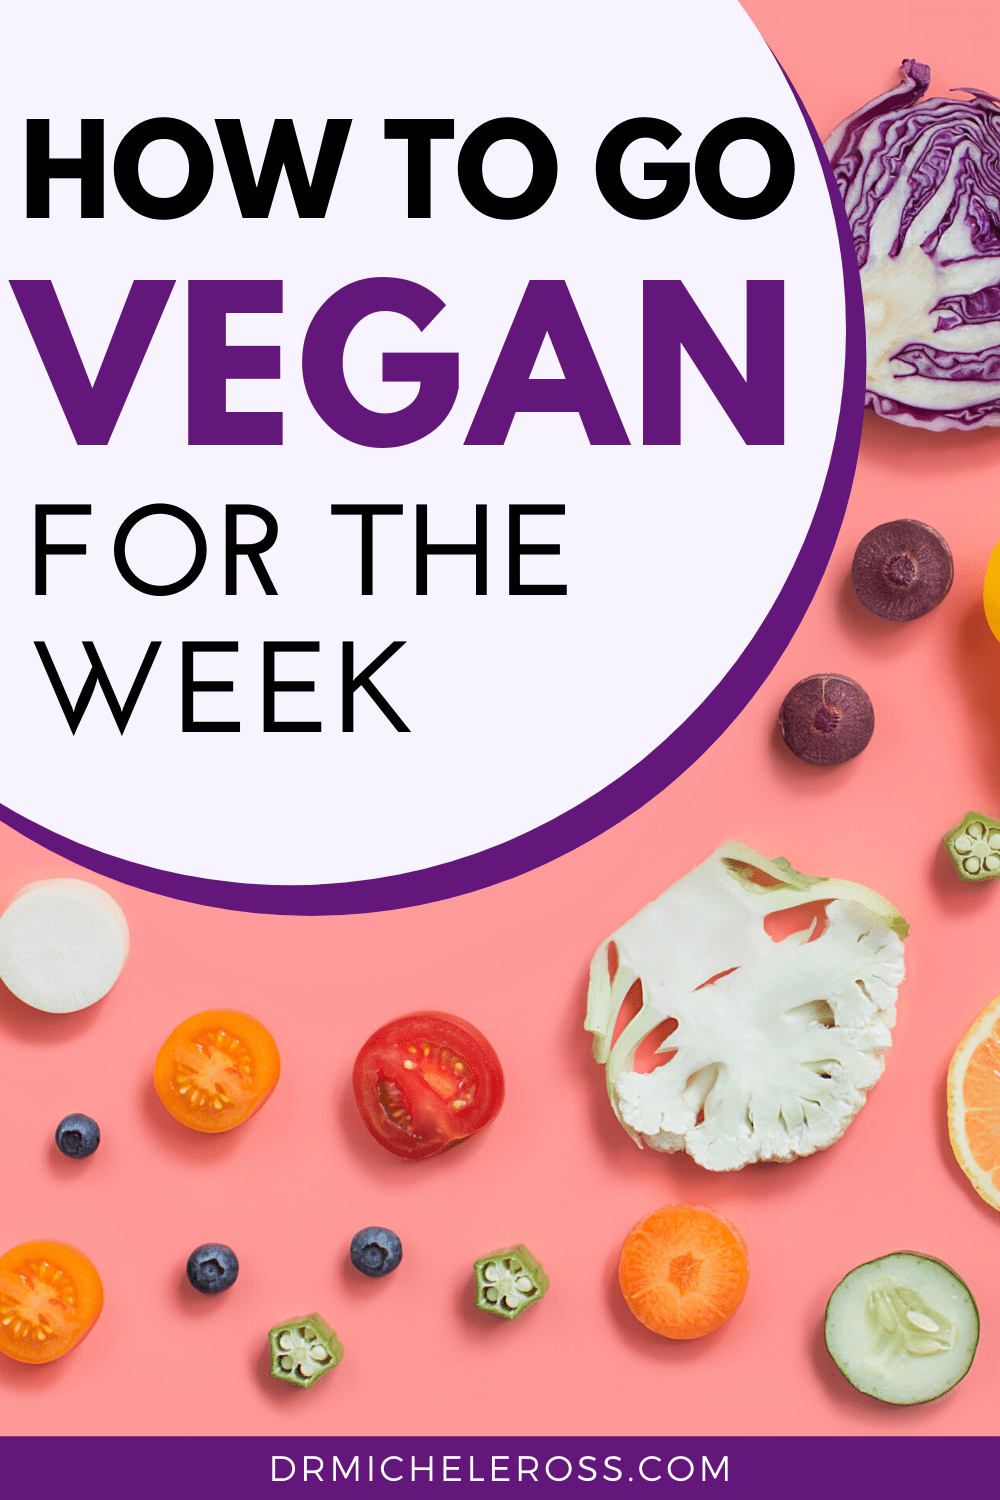 How To Go Vegan For A Week